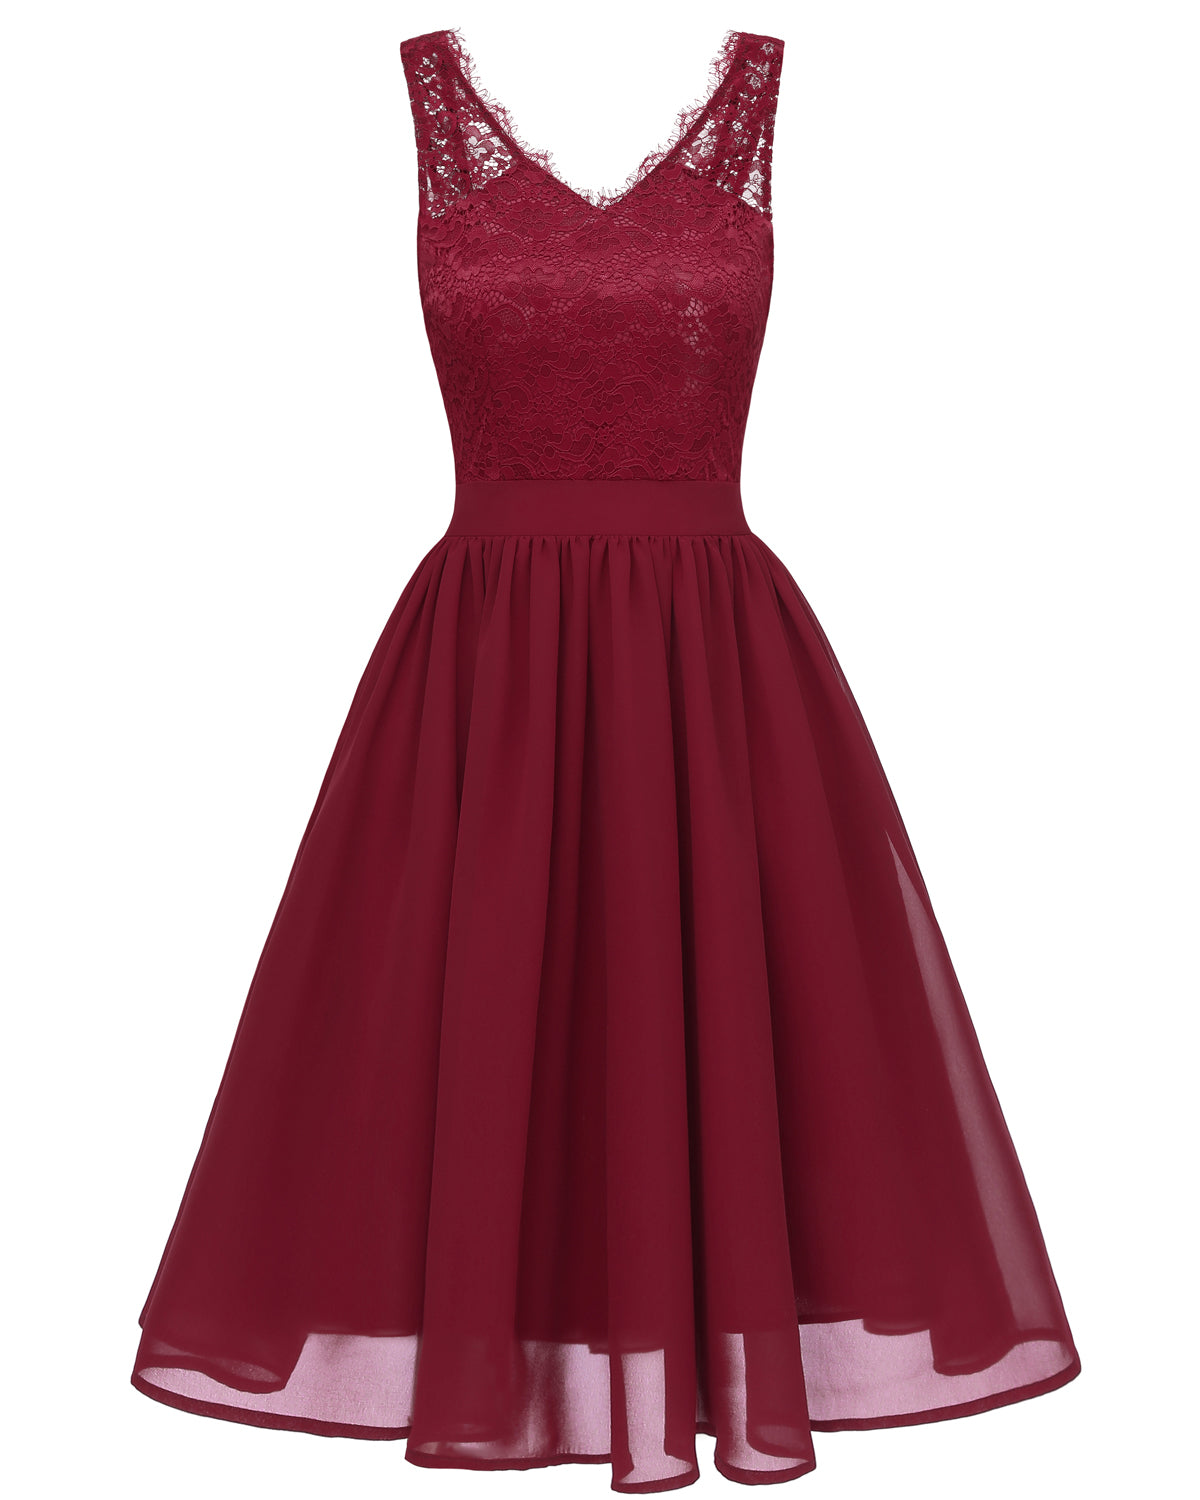 Flowergirl Vintage 1950s Strapped Hapqeelin Dress wineRed Front